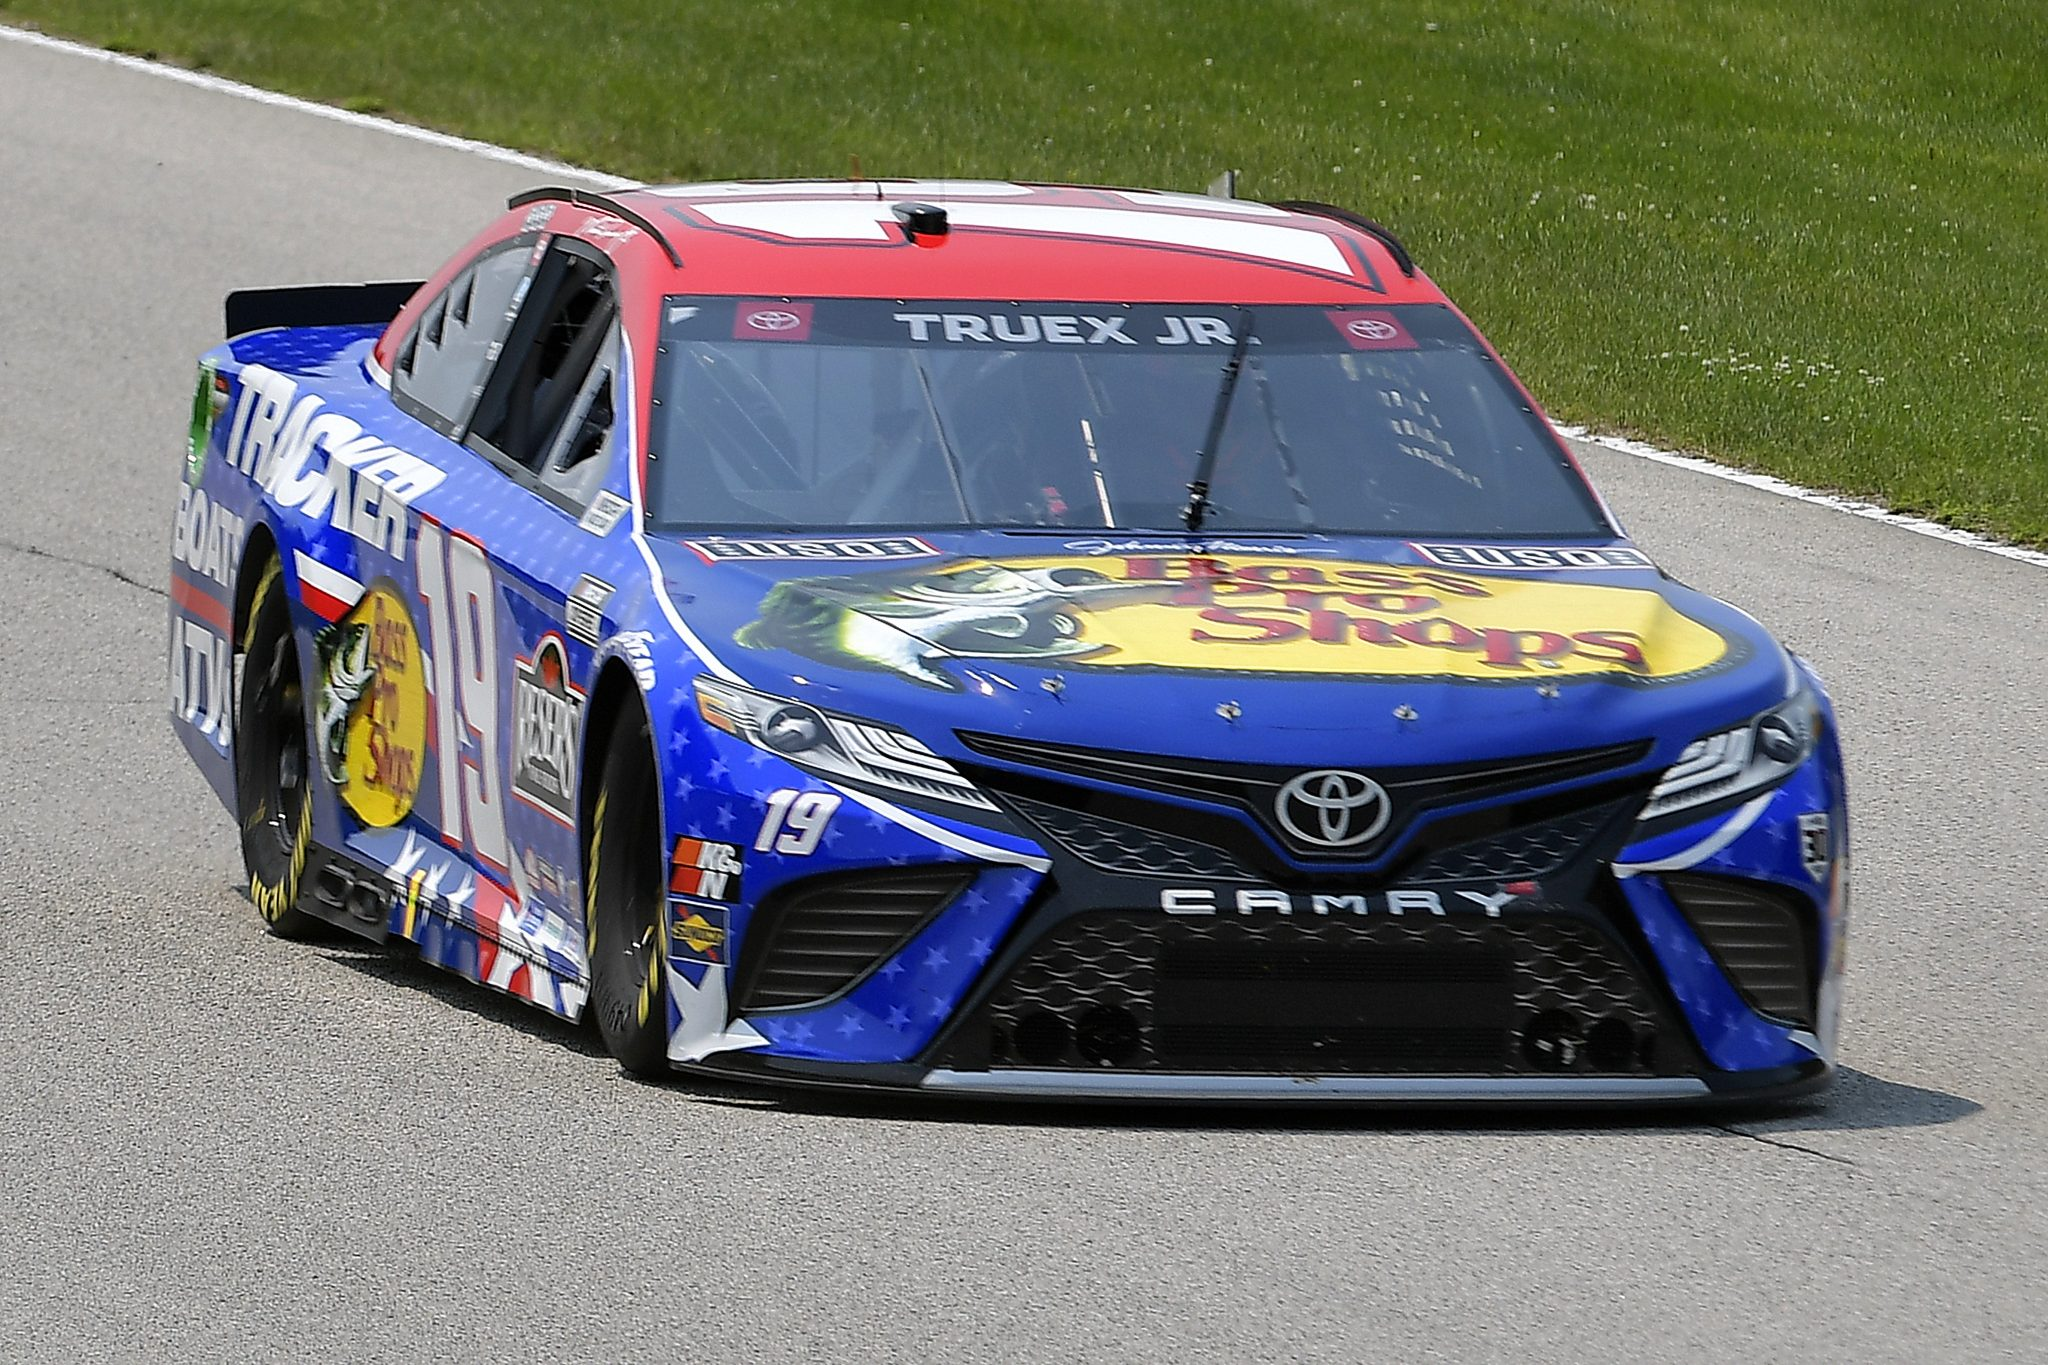 ELKHART LAKE, WISCONSIN - JULY 03: Martin Truex Jr., driver of the #19 Bass Pro Toyota, drives during practice for the NASCAR Cup Series Jockey Made in America 250 Presented by Kwik Trip at Road America on July 03, 2021 in Elkhart Lake, Wisconsin. (Photo by Logan Riely/Getty Images) | Getty Images